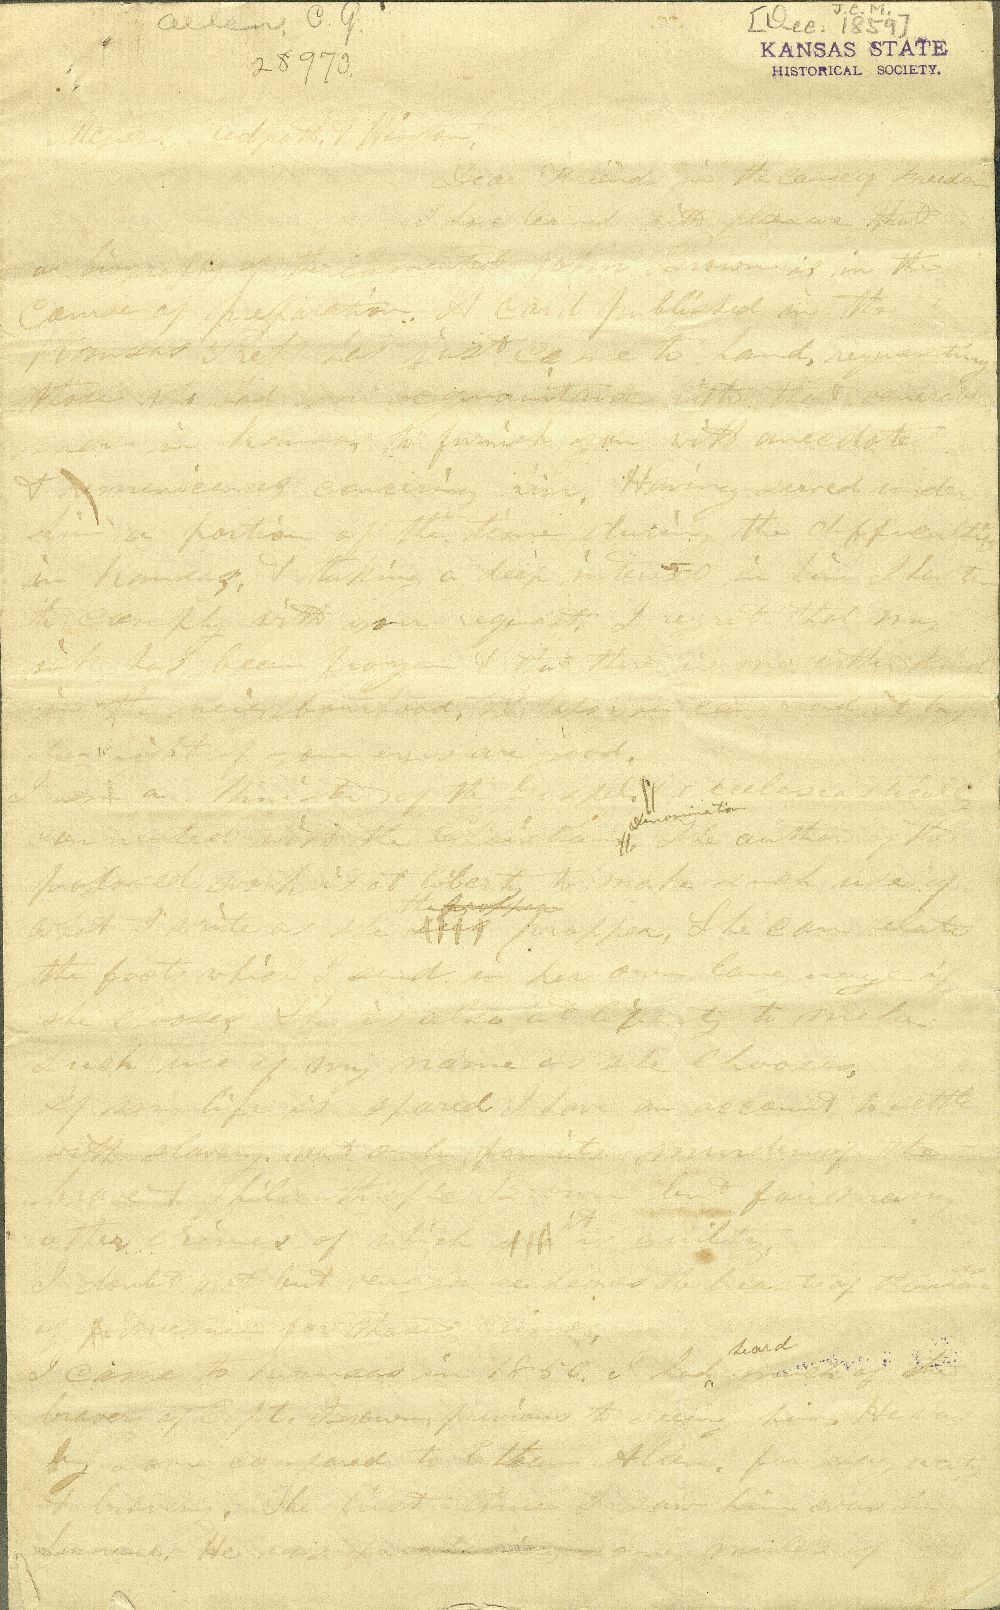 C. G. Allen's response to Redpath and Hinton's call for information about John Brown - 1